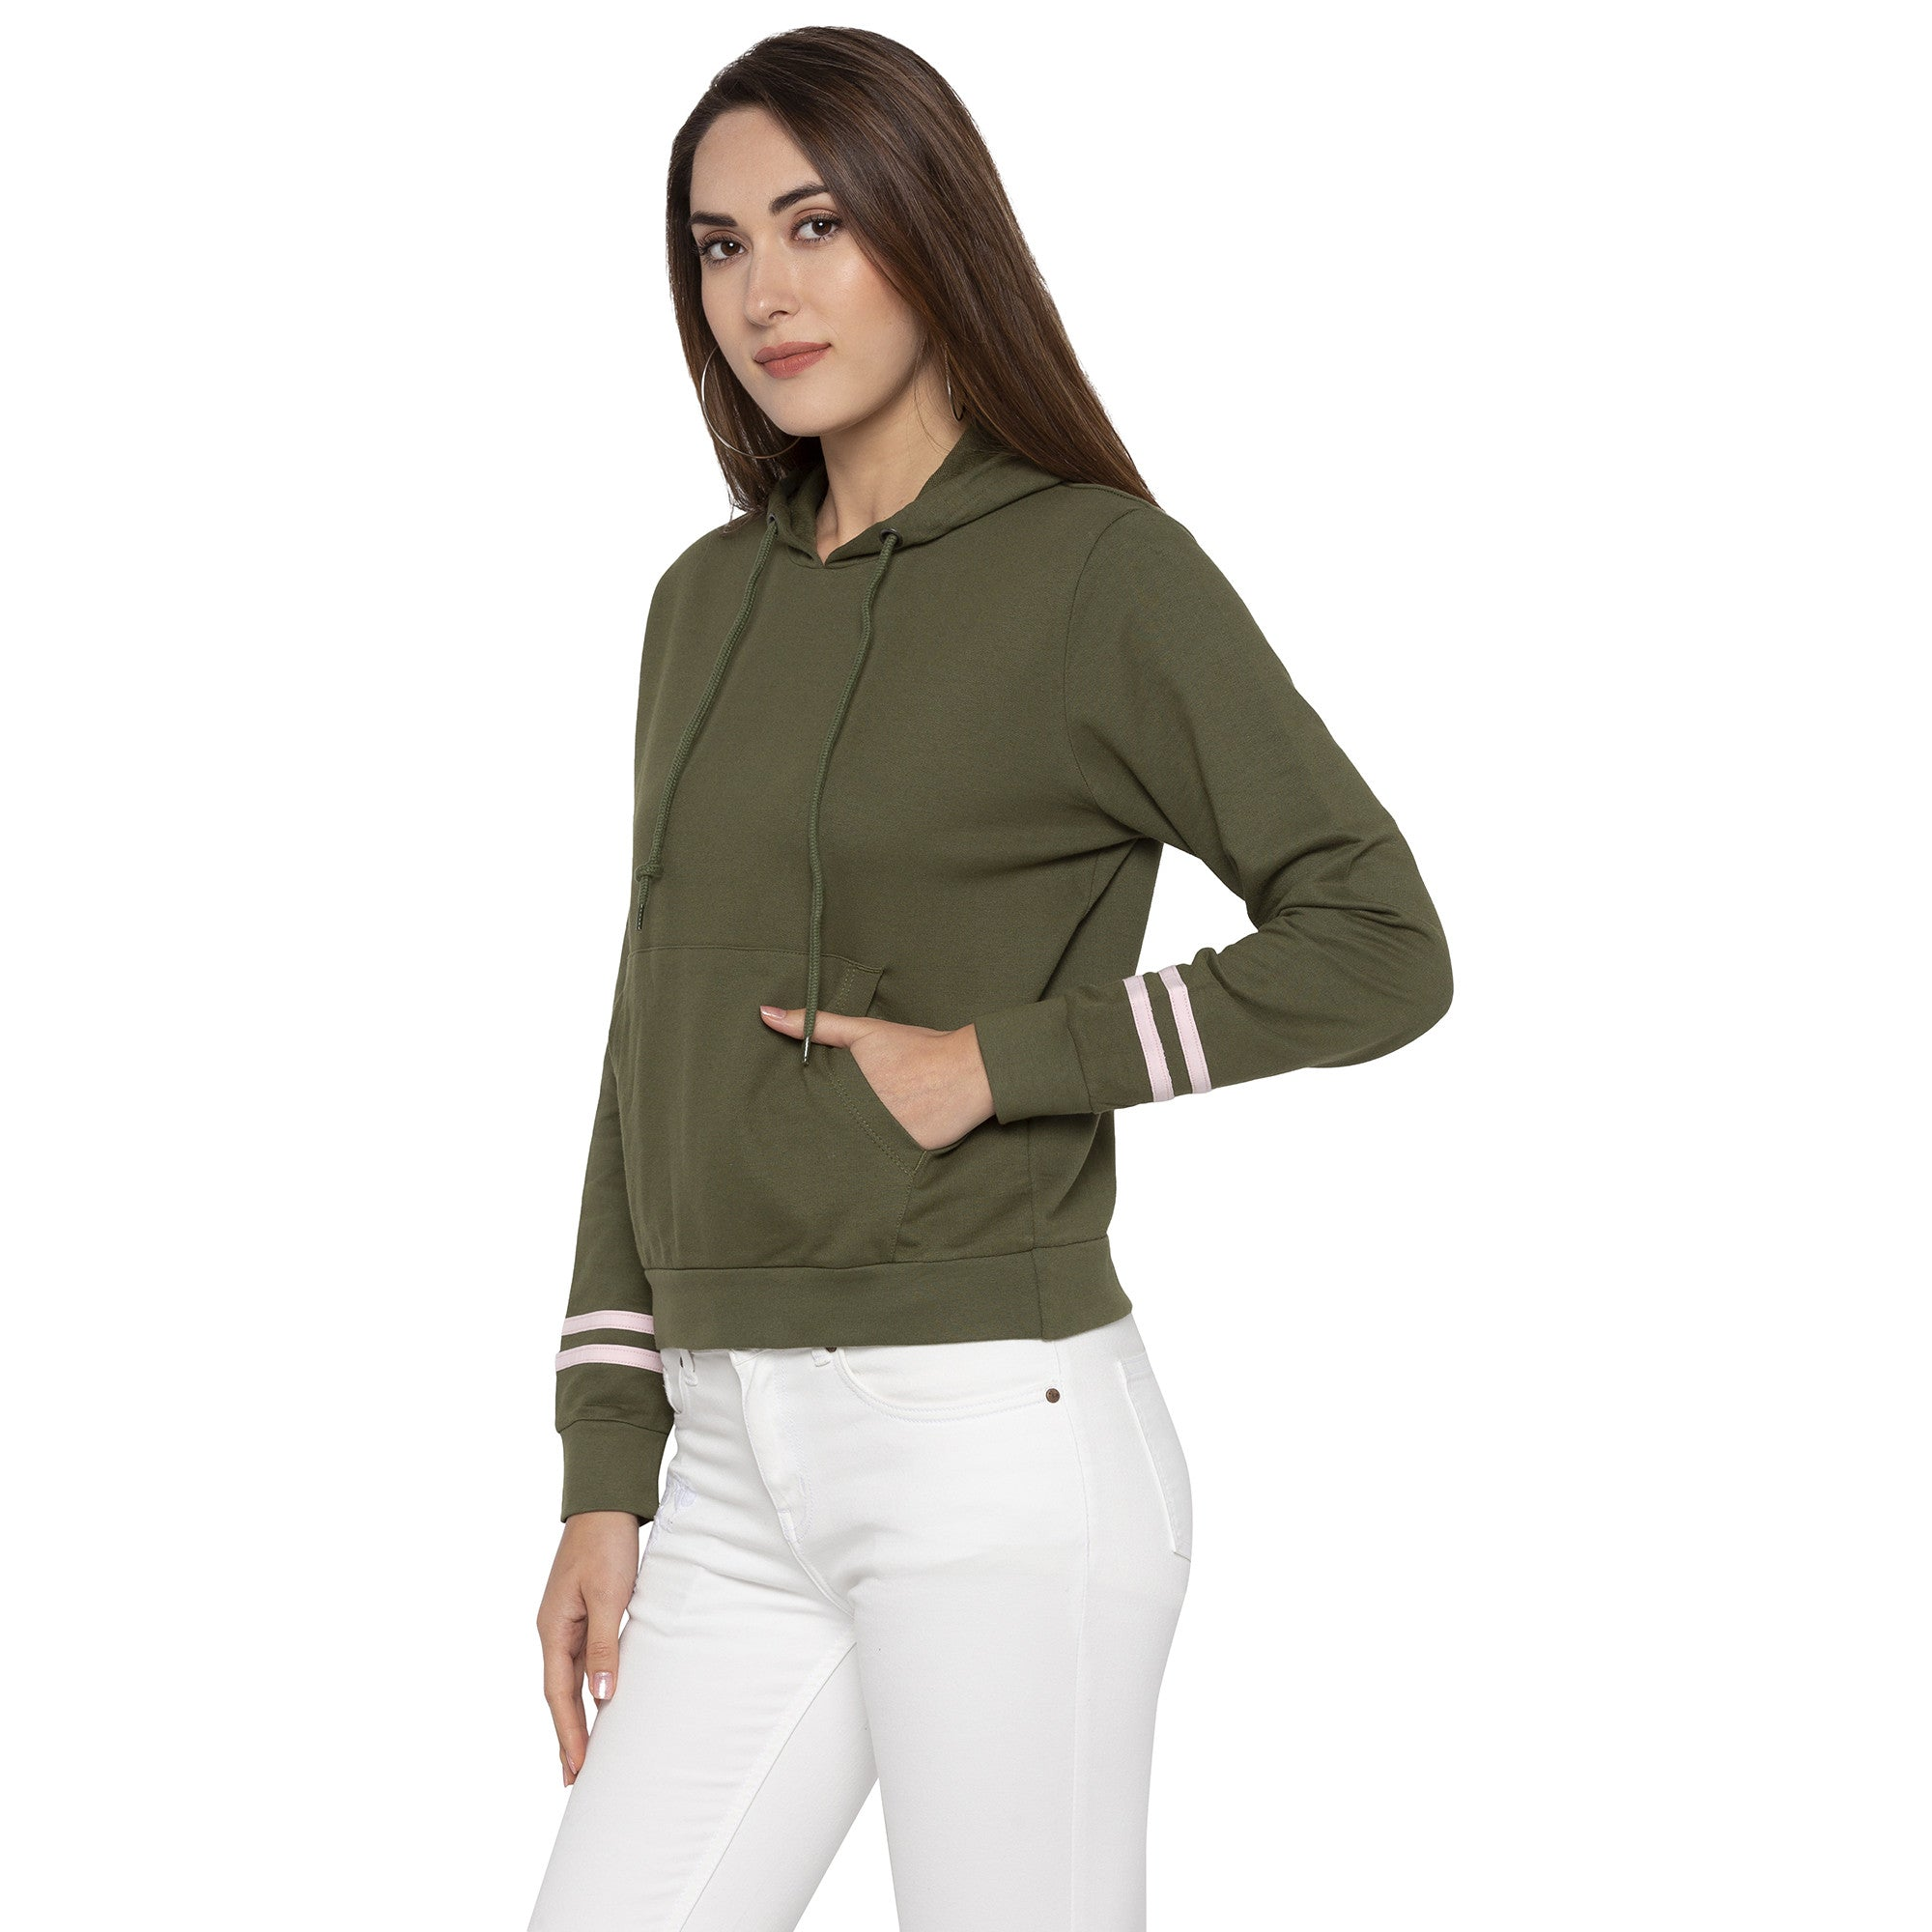 Casual Olive Color Solid Hooded Sweatshirt-2